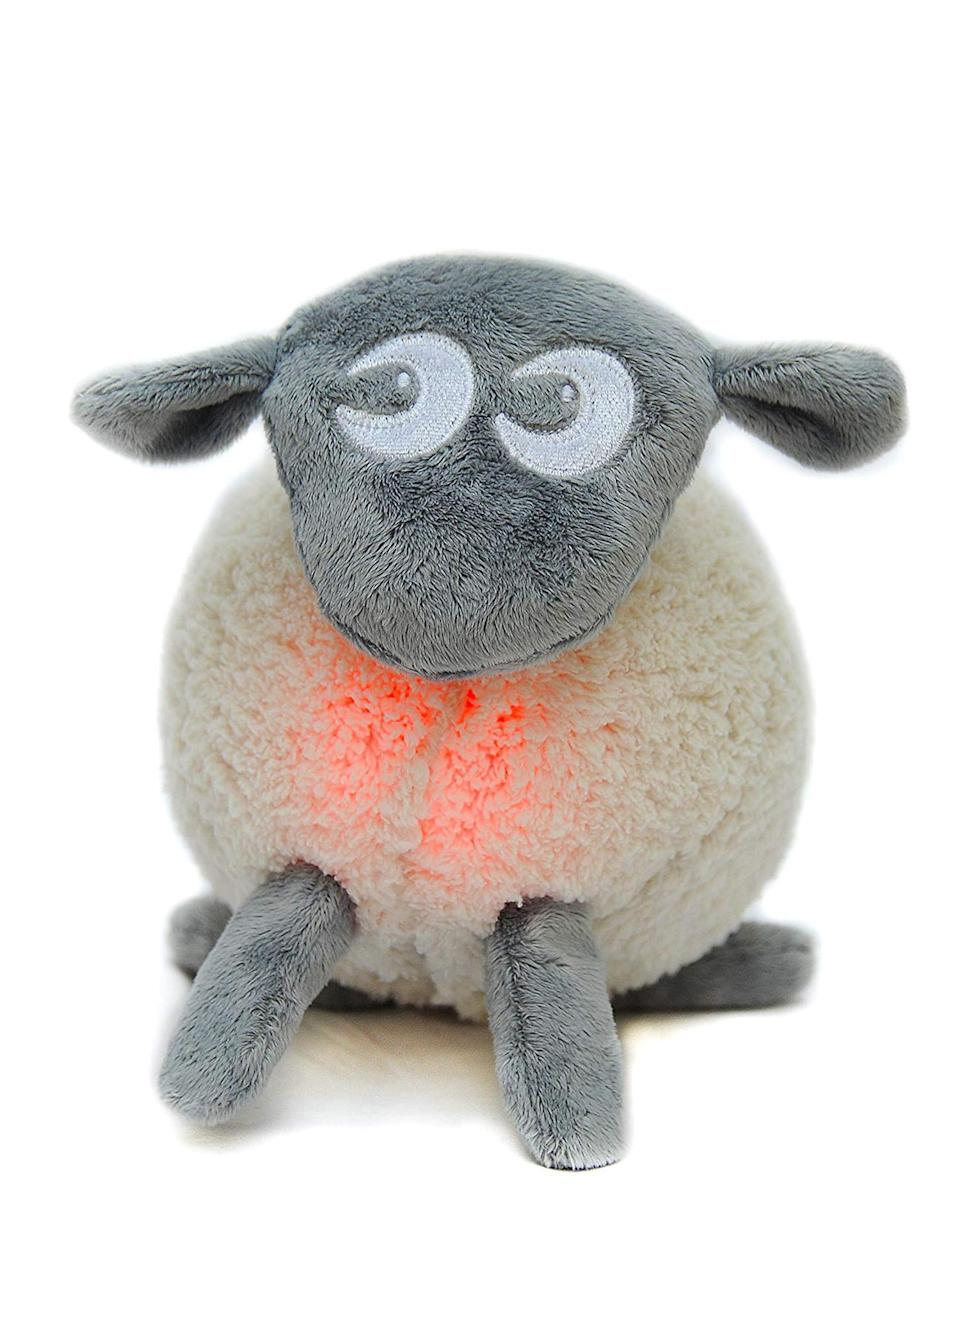 """<p>New mums swear by Ewan the sheep, a cuddly toy designed to mimic the womb. Using light and heartbeat recordings, the cuddly toy is guaranteed to lull your little one into a peaceful slumber. <em><a href=""""https://www.boots.com/sweetdreamers-ewan-the-dream-sheep-grey-10205089"""" rel=""""nofollow noopener"""" target=""""_blank"""" data-ylk=""""slk:Buy here"""" class=""""link rapid-noclick-resp"""">Buy here</a></em>. </p>"""